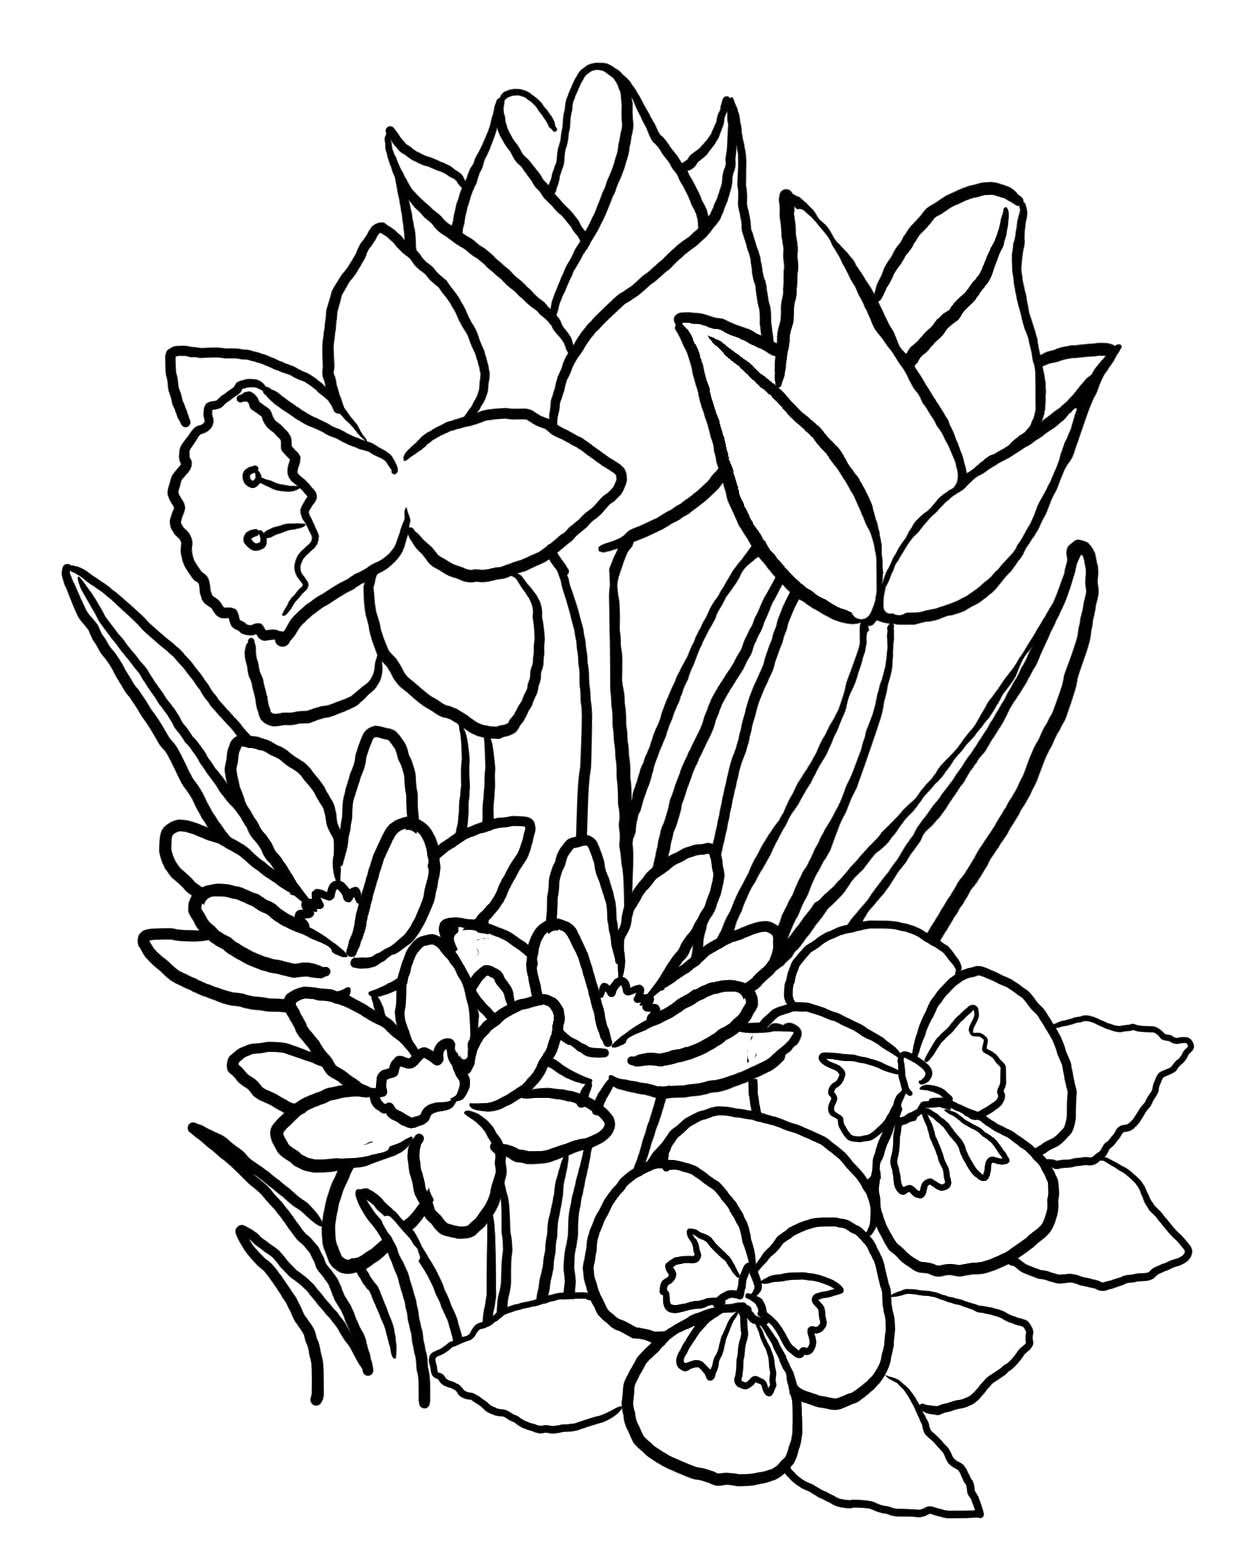 cute flower coloring pages daisy scout flower coloring pages cute printable flower pages cute coloring